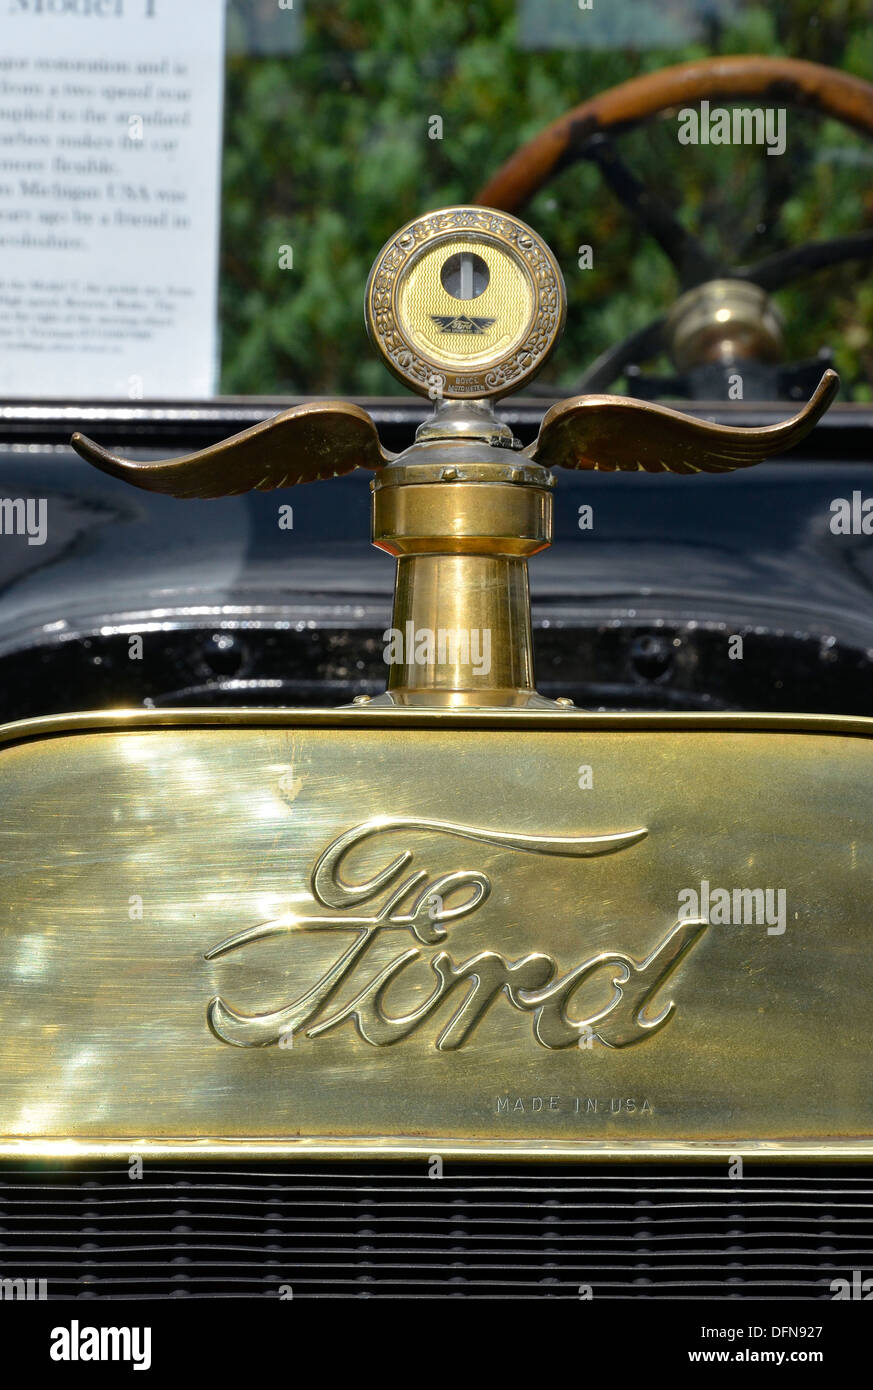 Brass radiator header tank of an original condition 1915 Model T  Ford car (automobile) showing embossed Ford logo. Stock Photo